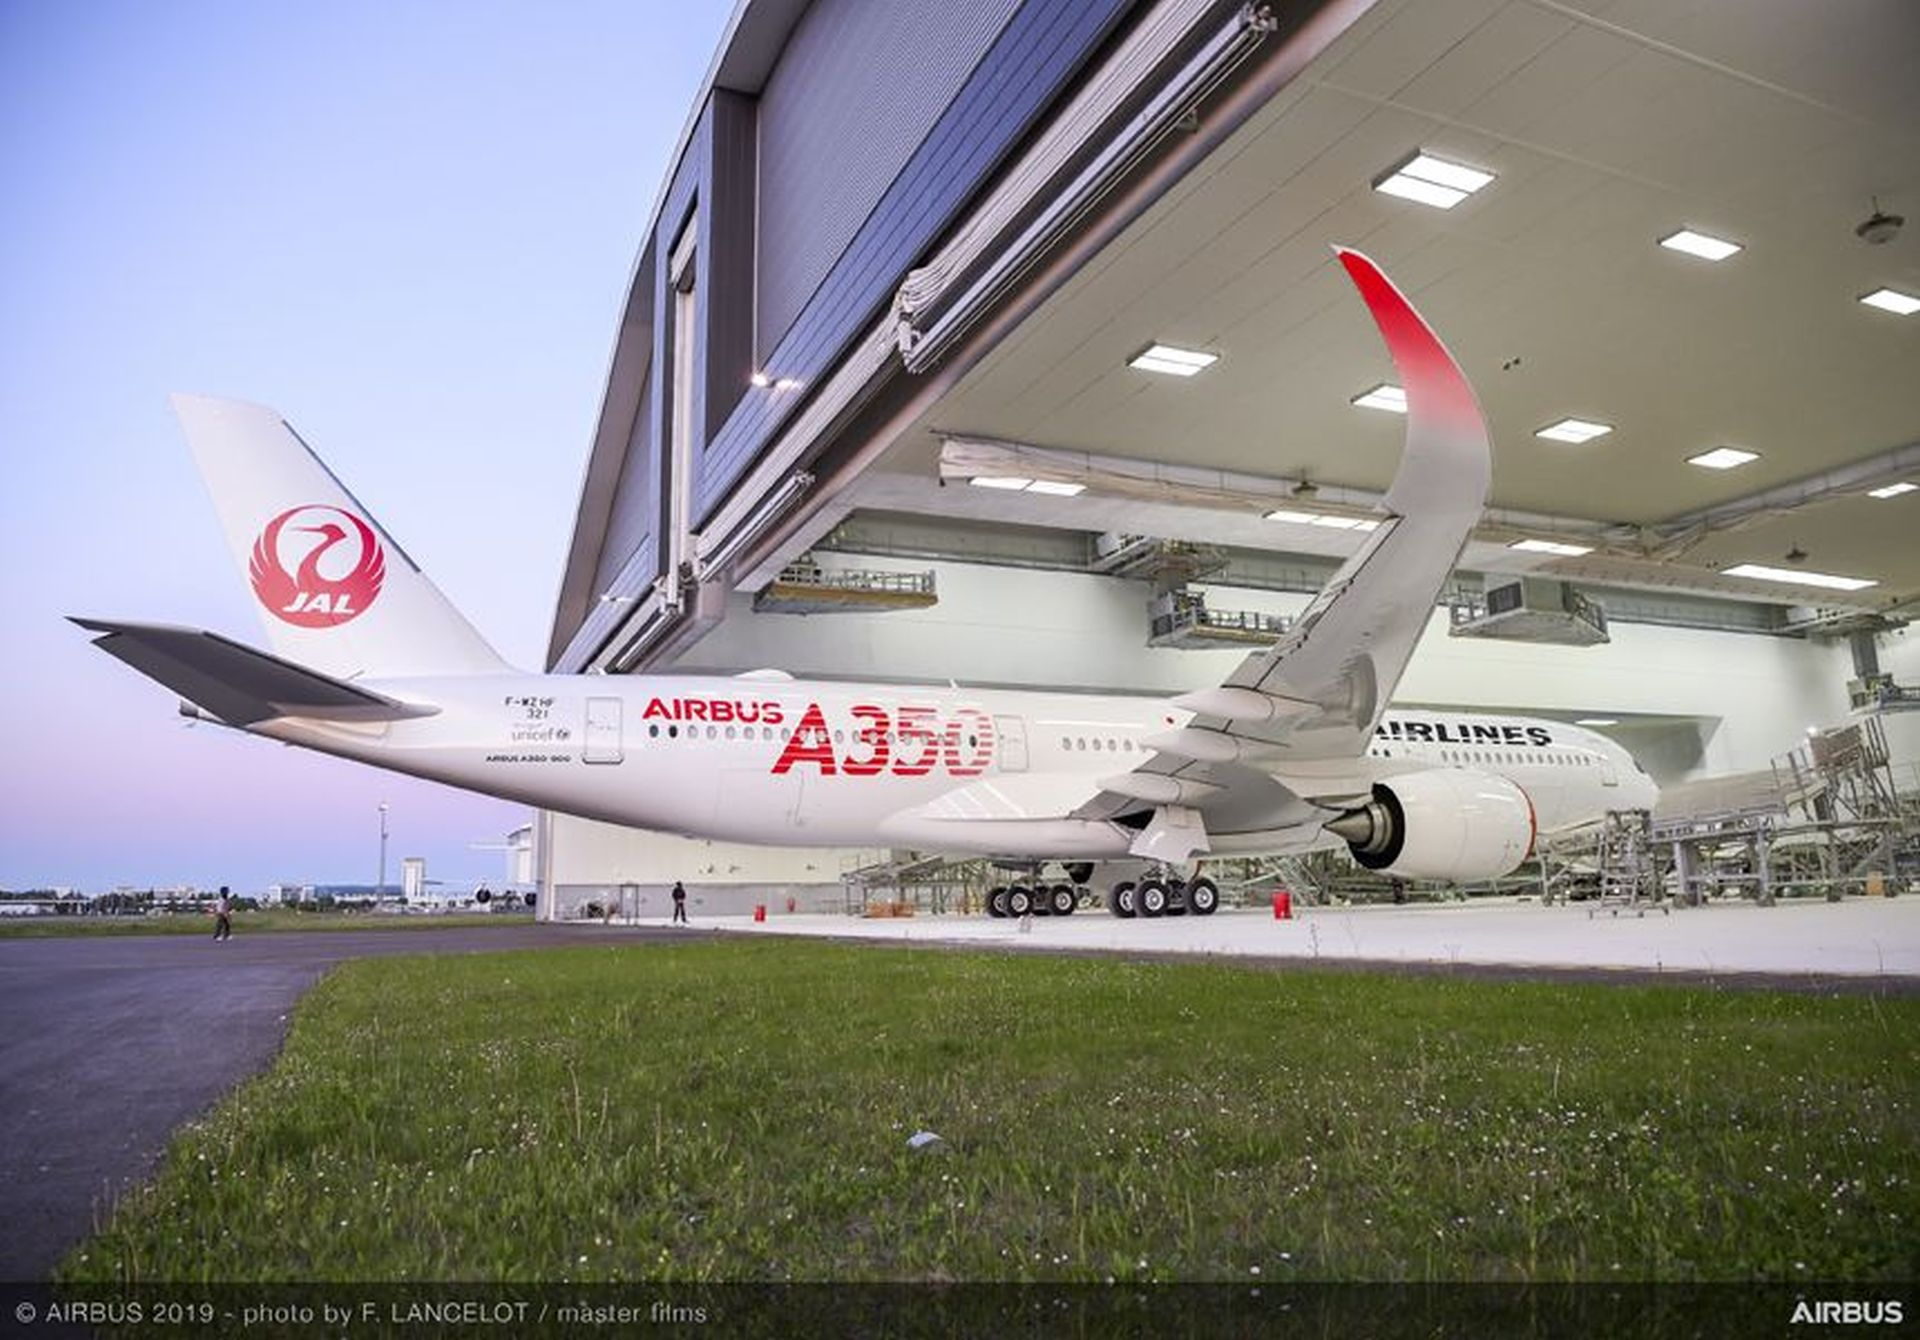 A350-900 v barvách Japan Airlines. Foto: Airbus